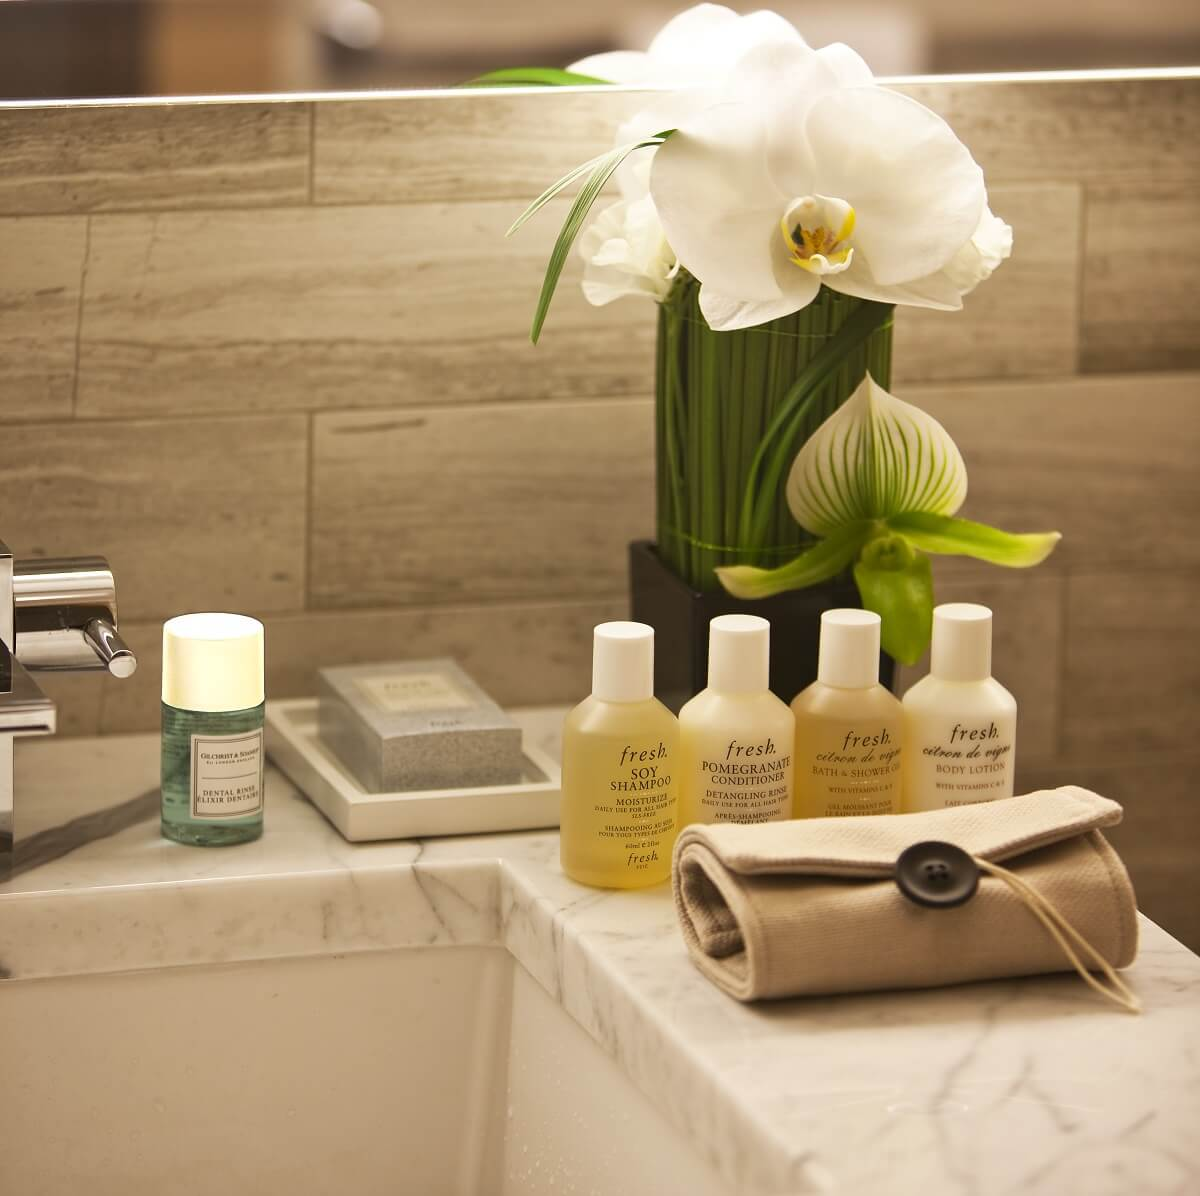 Ordinaire Best Hotel Toiletries In NYC